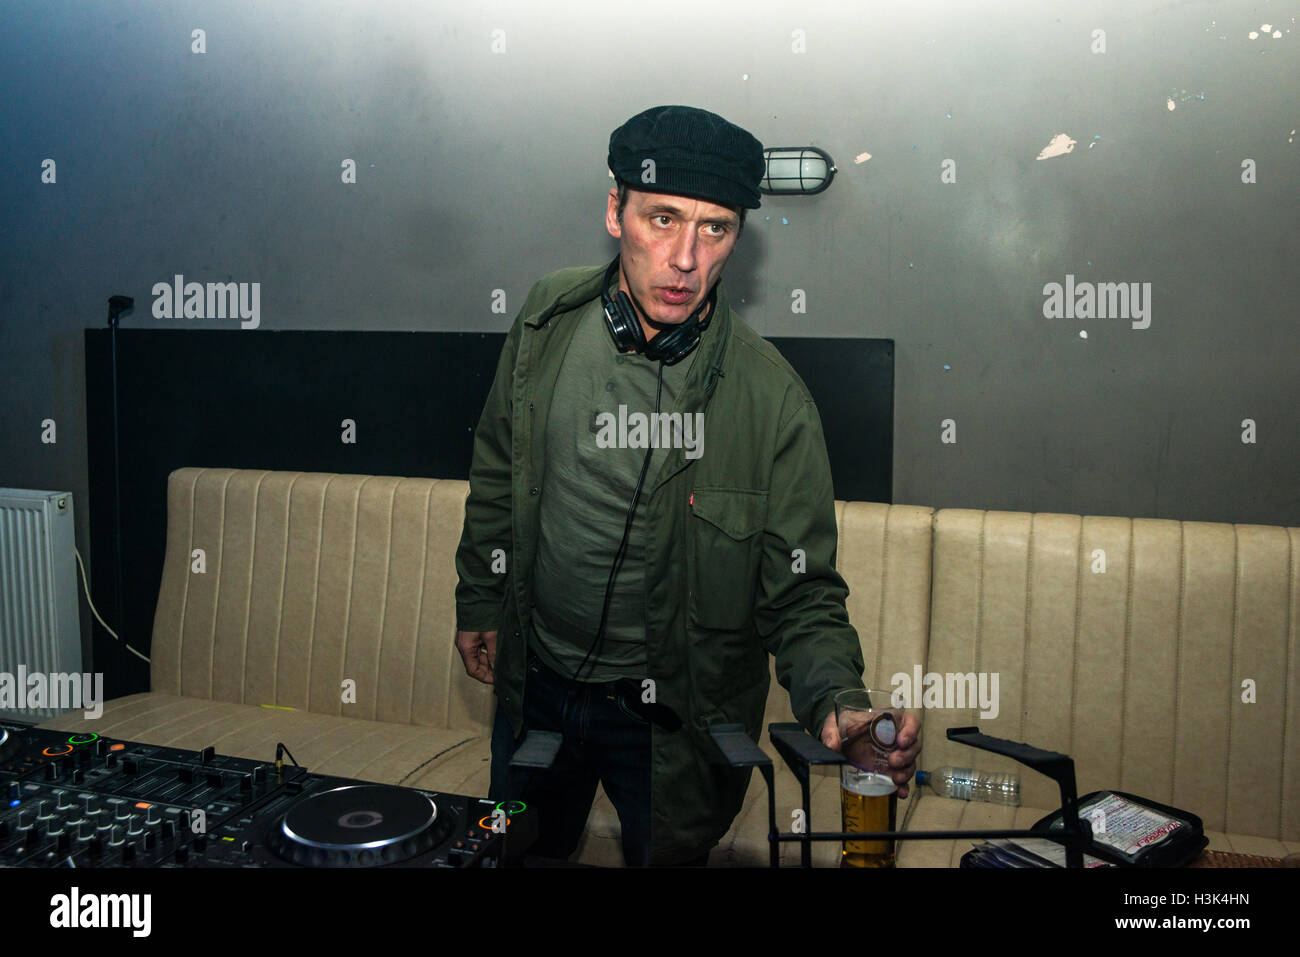 London UK, 8th October 2016. Oasis and Noel Gallagher's tour DJ Phil Smith djing at This Feeling Presents, Nambucca, London. Credit:  Alberto Pezzali/Alamy Live news Stock Photo